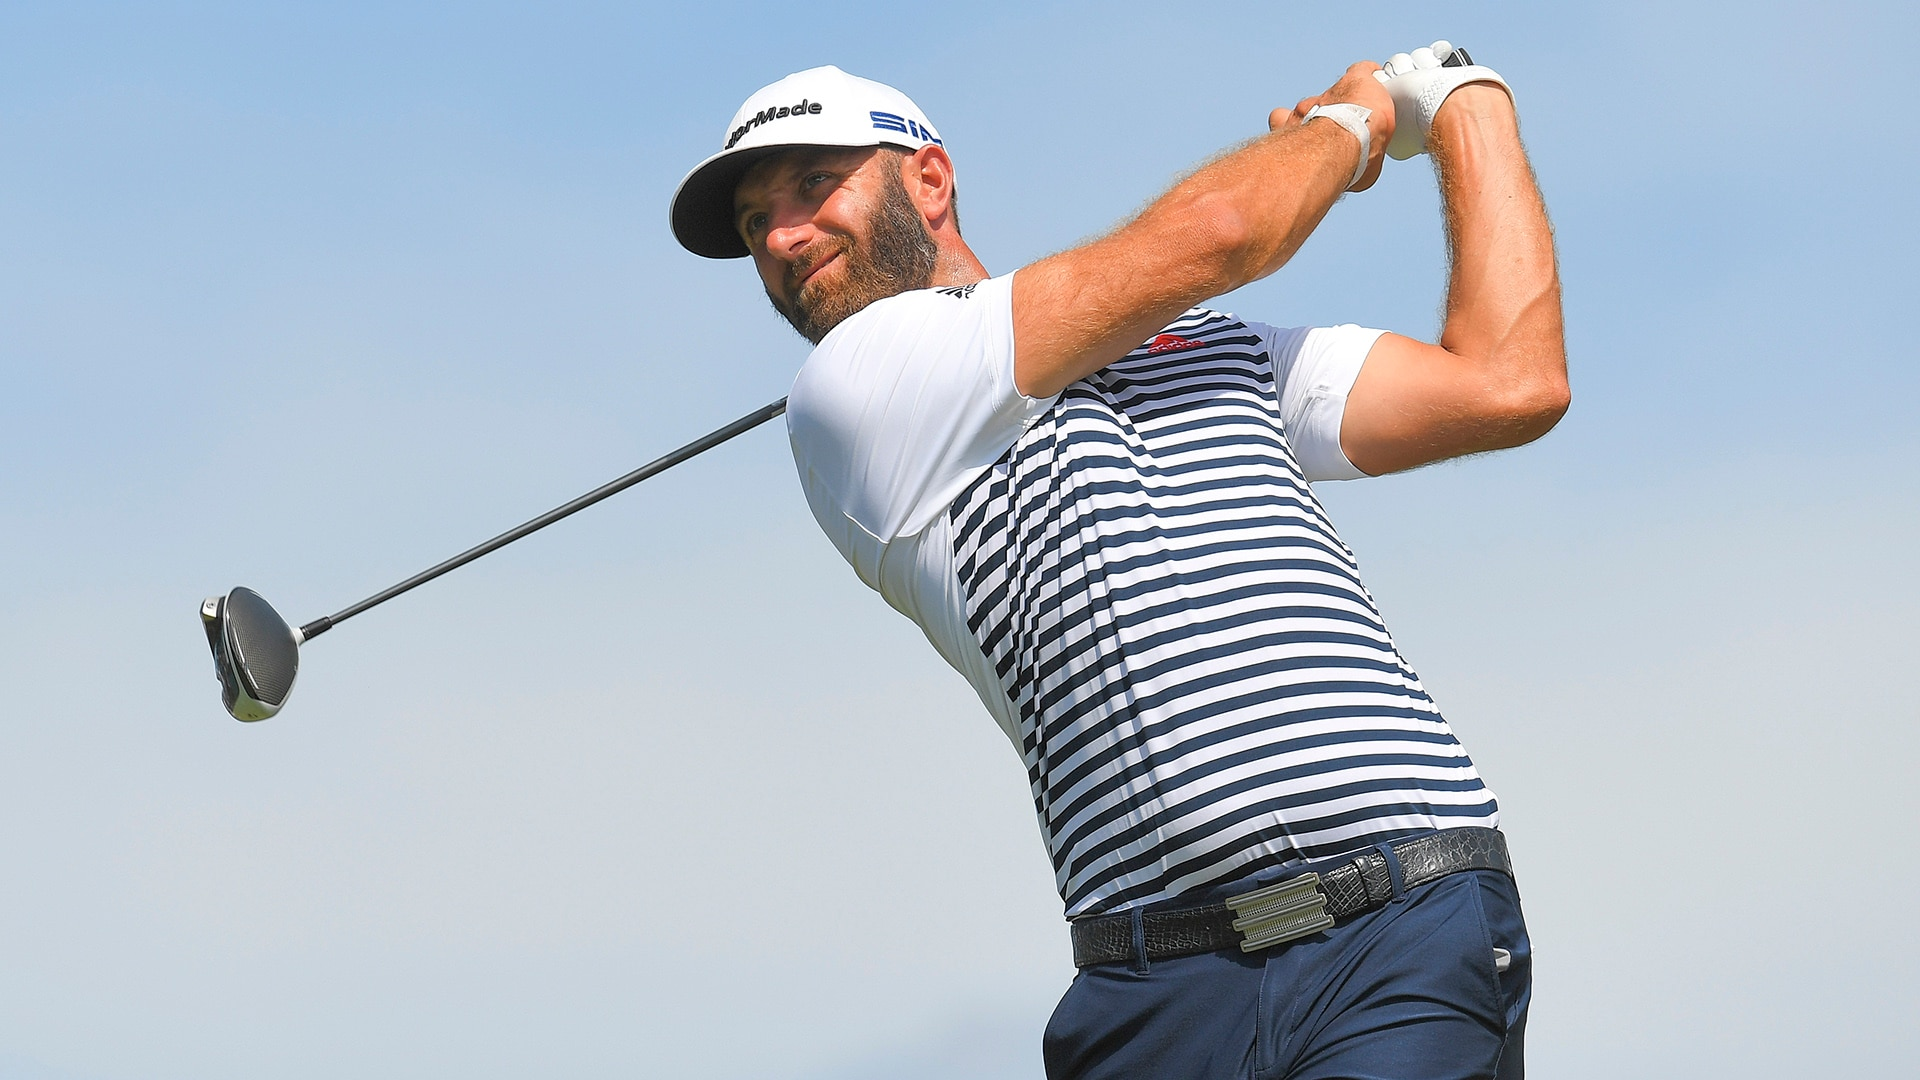 Dustin Johnson (back) withdraws after opening 78 at 3M Open | Golf ...